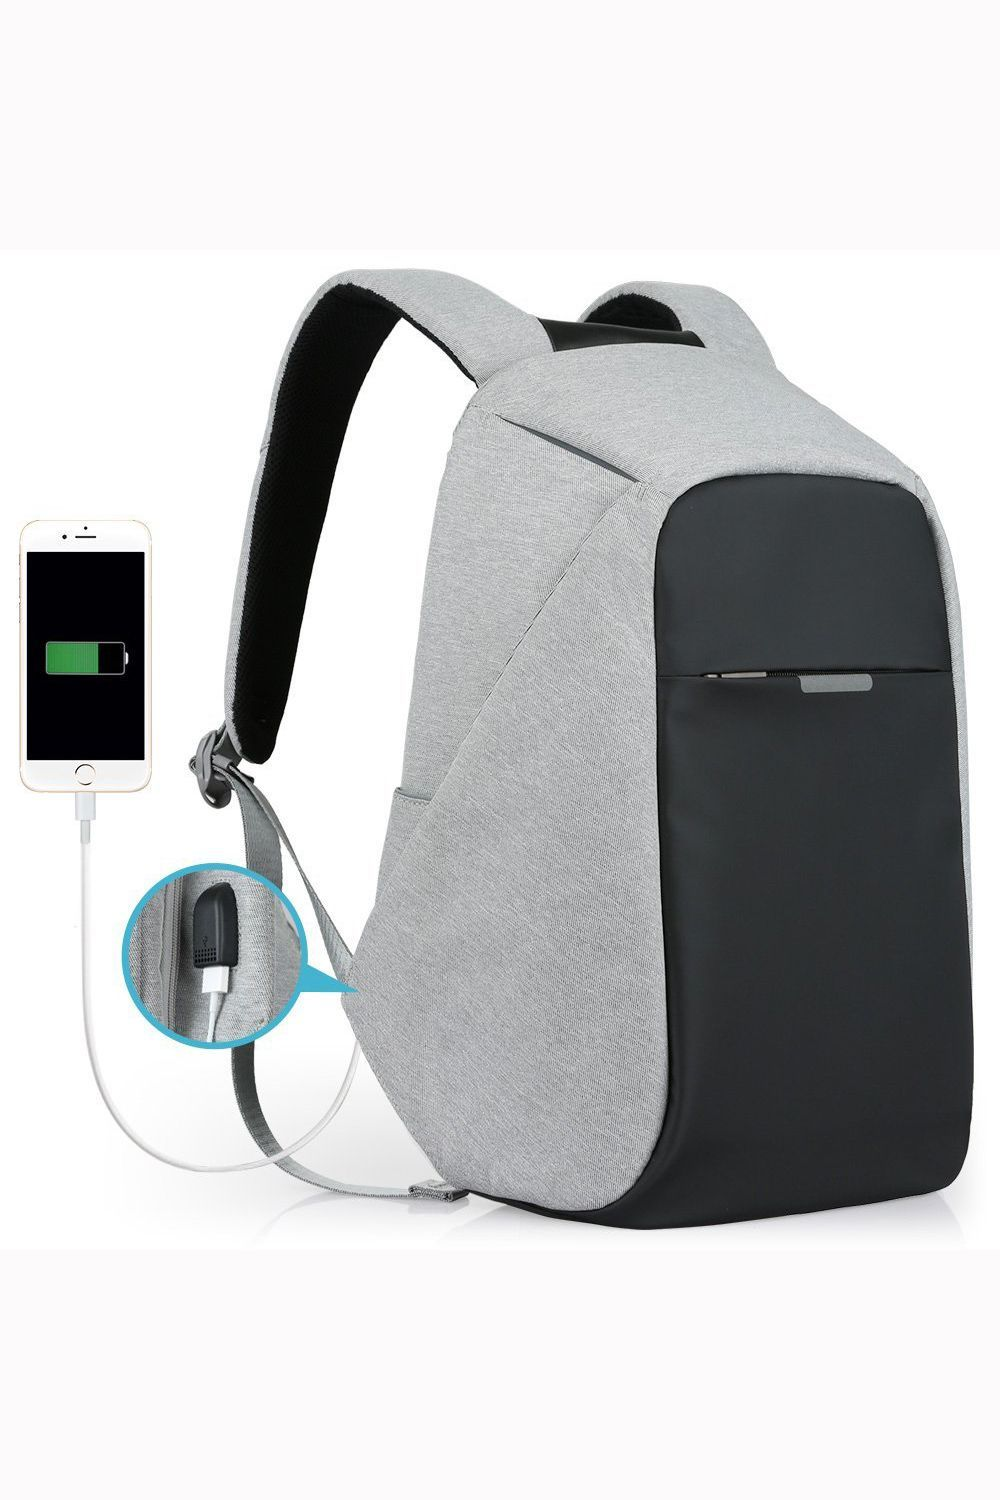 93e211f5bdcc 13 Best Laptop Backpacks - Cutest Designer Computer Totes